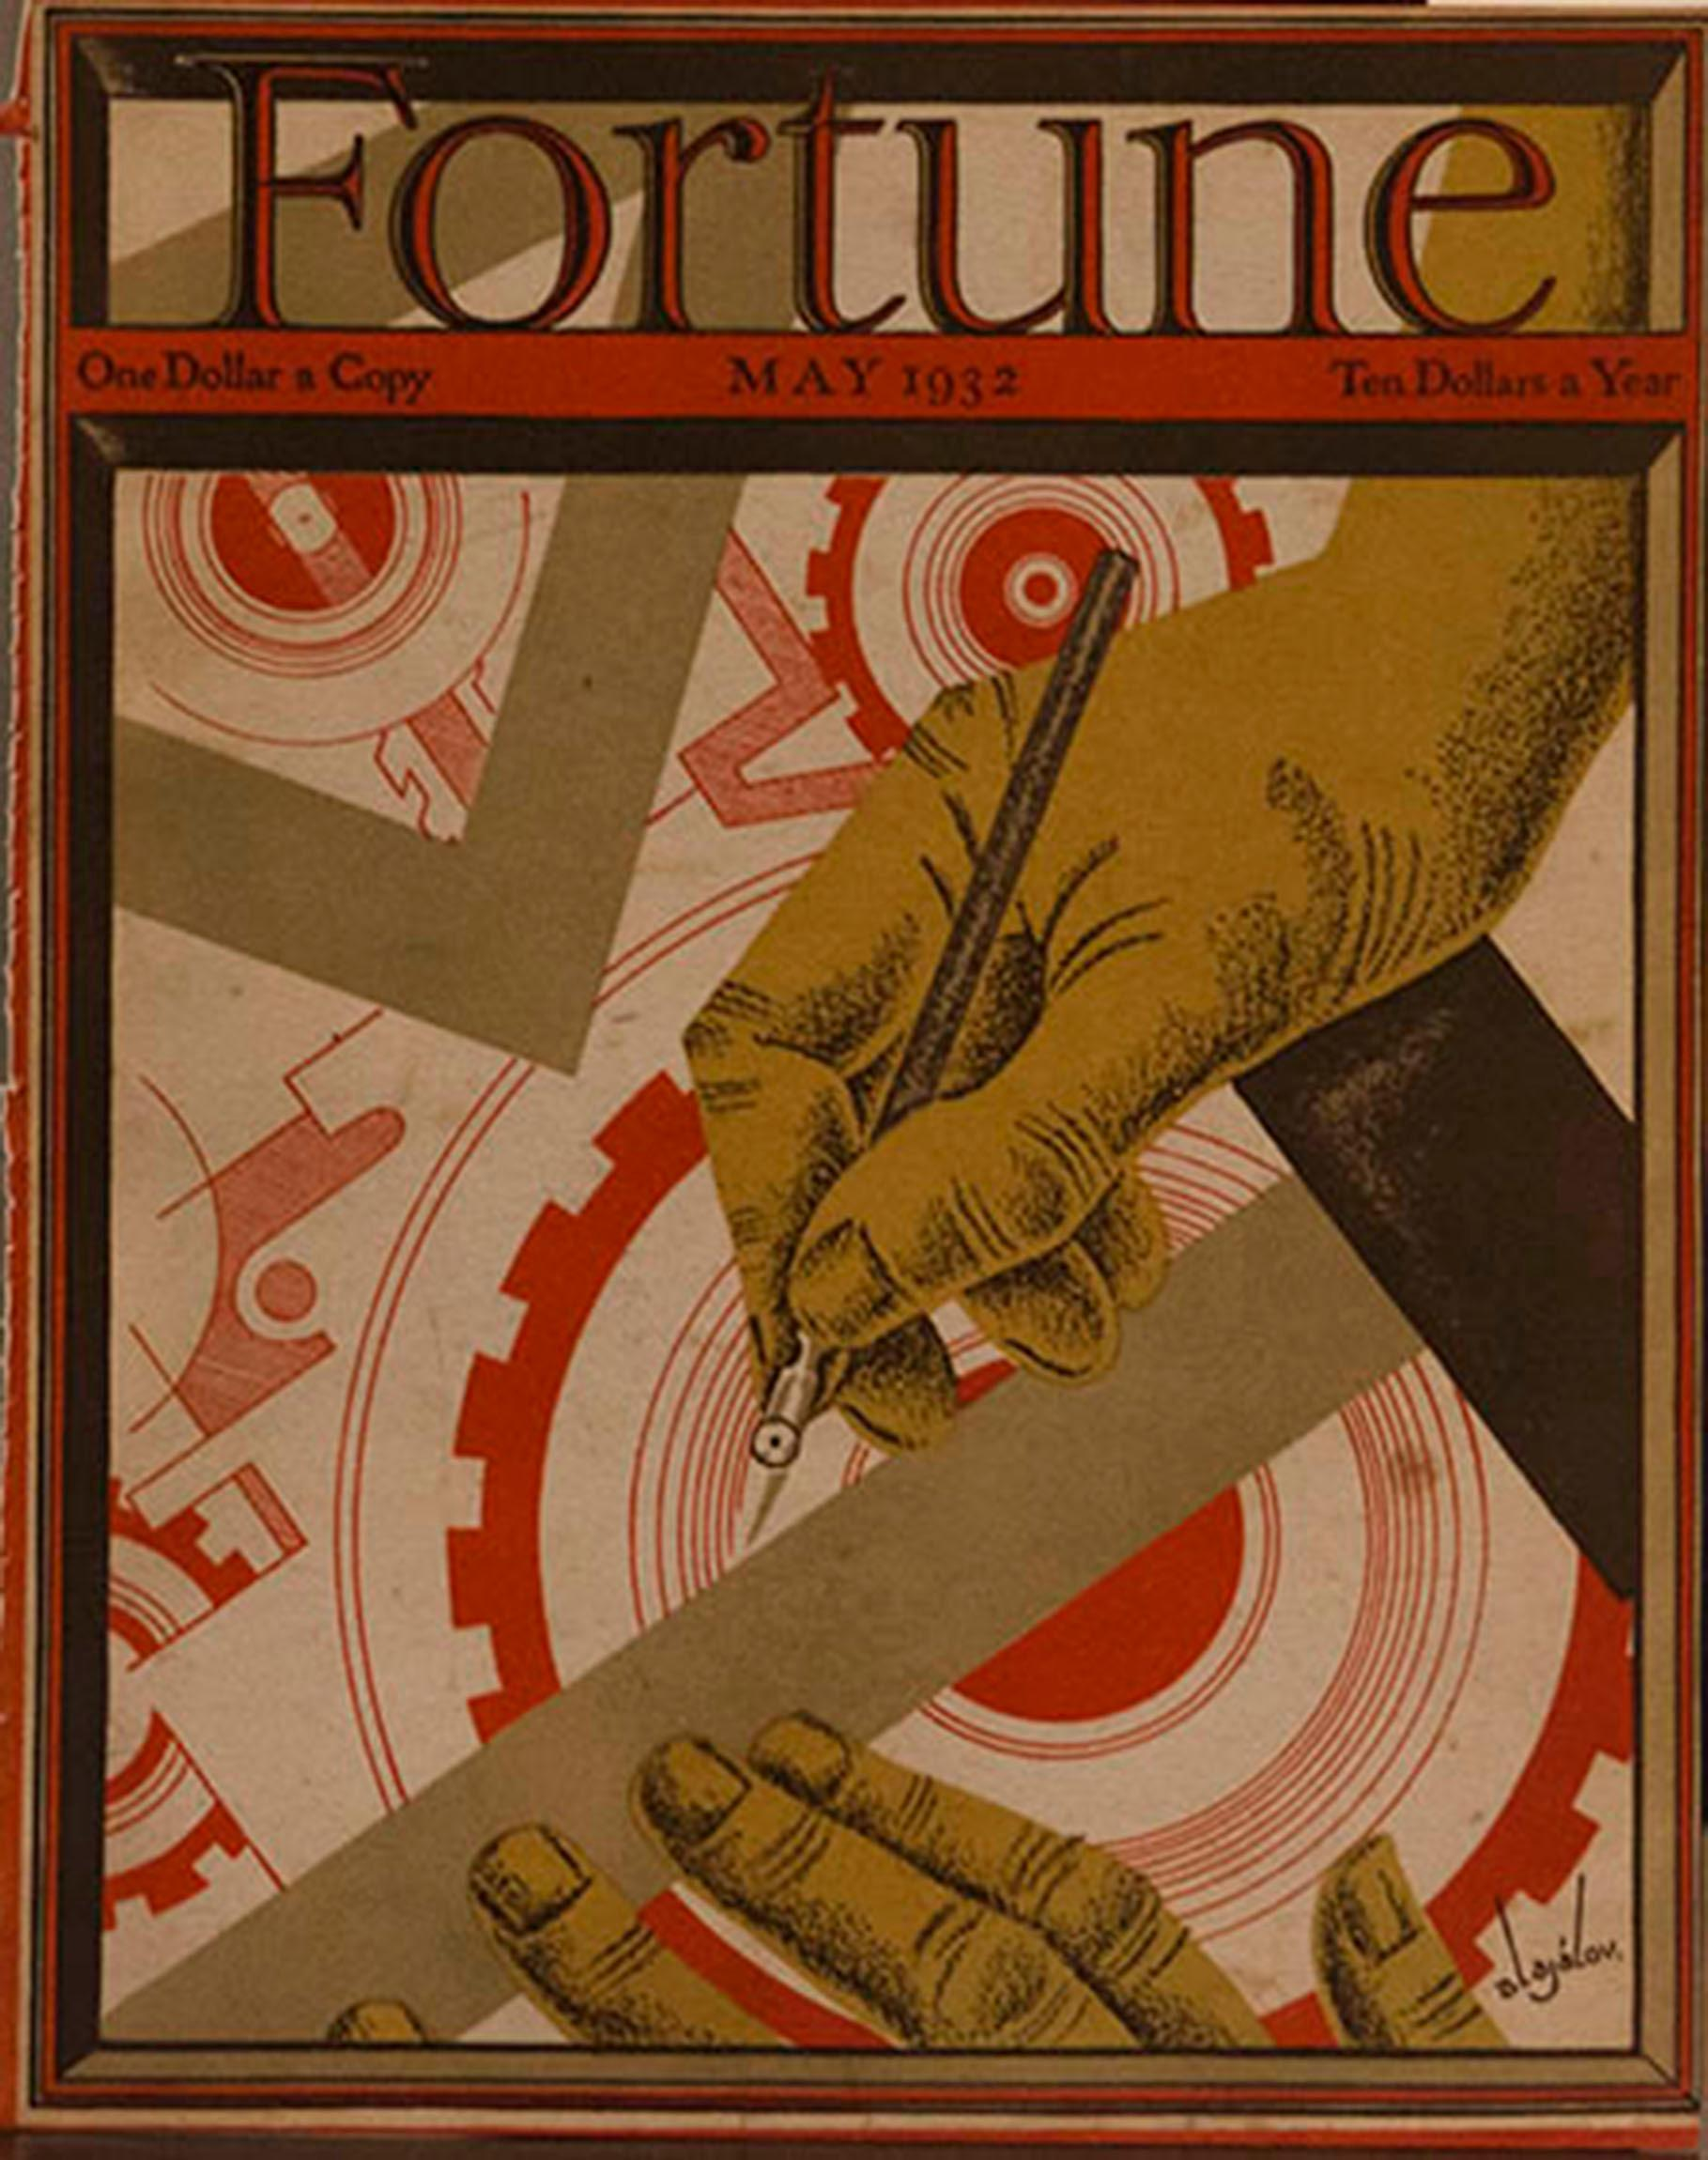 A Collection of 65 Original Fortune Magazine Covers 1931-1940